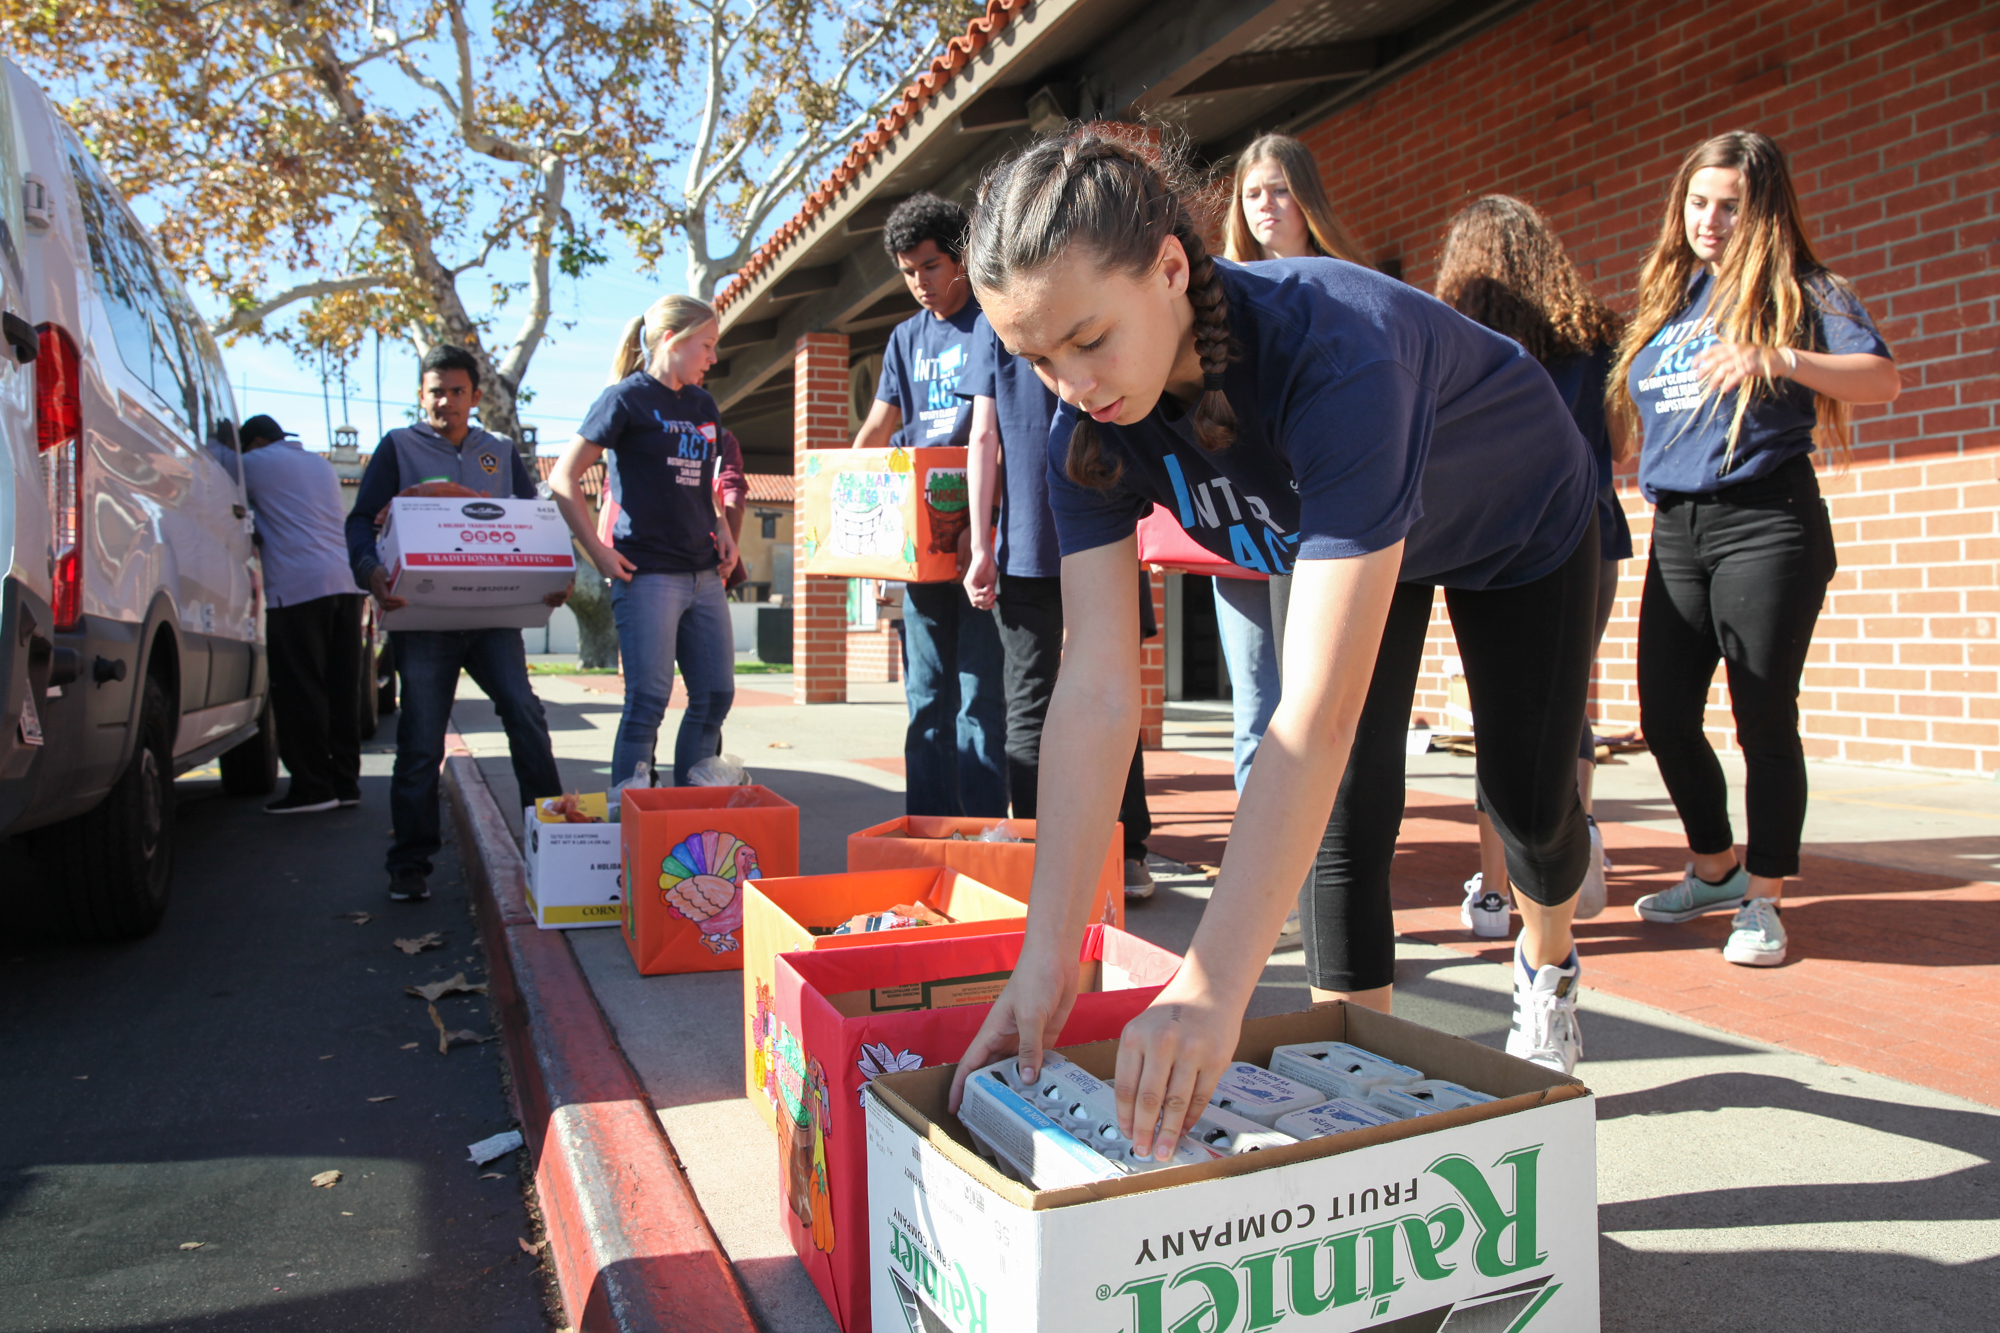 The SJC Rotary Club and student volunteers met at San Juan Capistrano Elementary School on Nov. 18 to distribute Thanksgiving meal donations to local families in need. Photo: Allison Jarrell